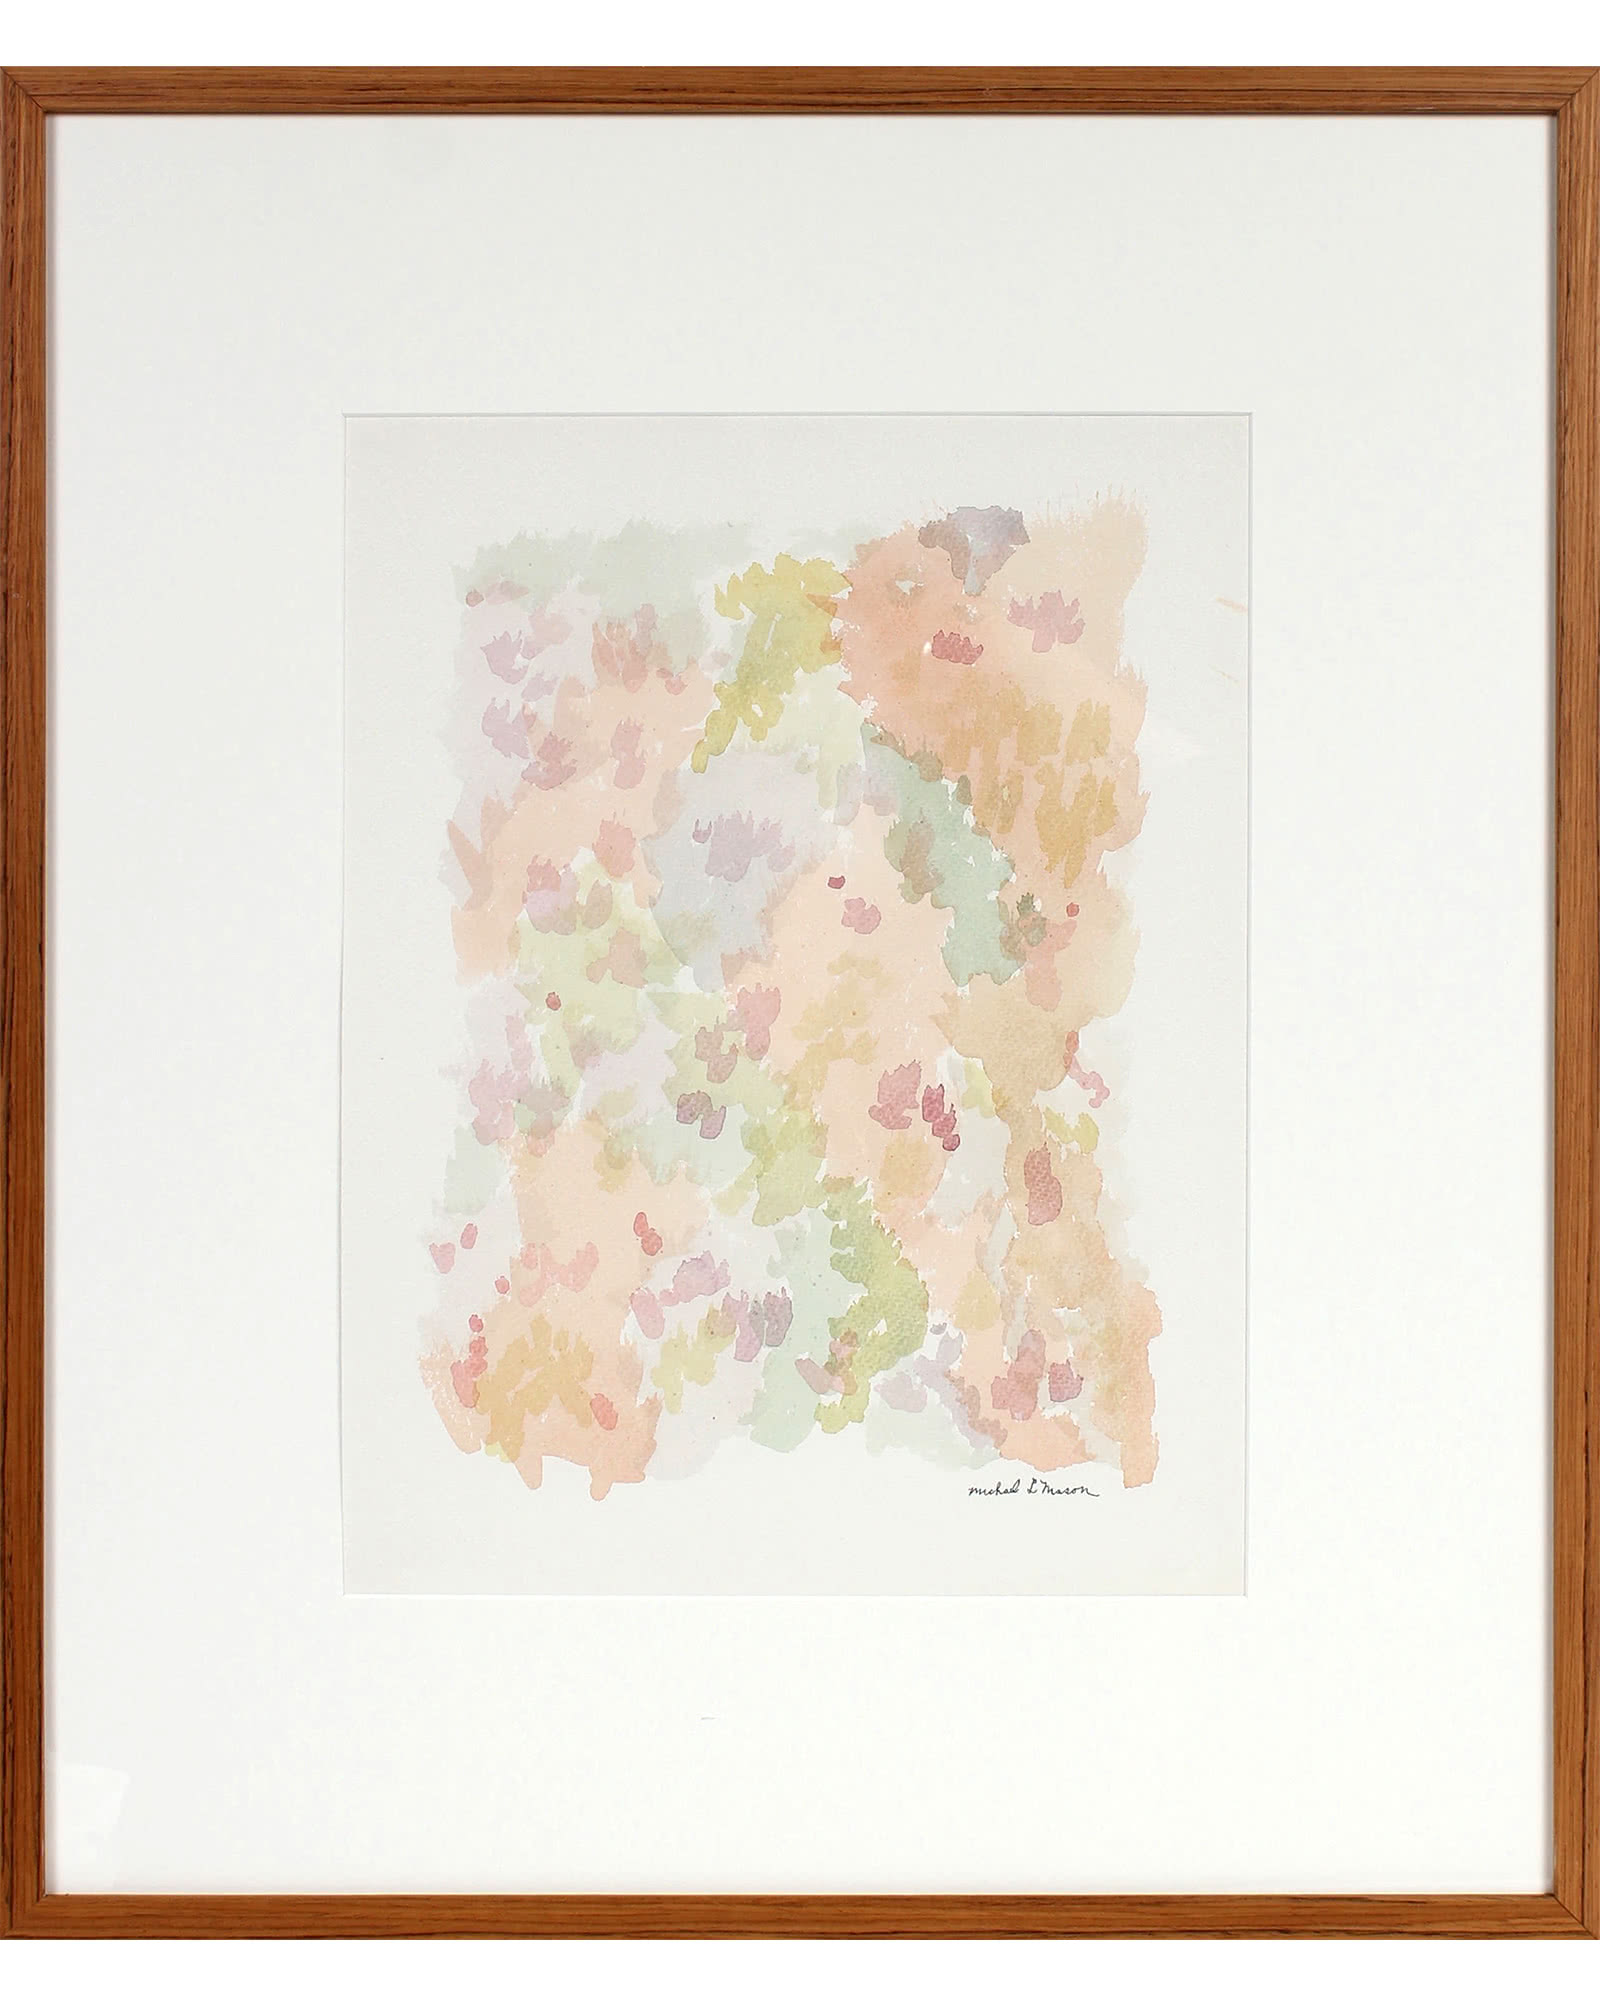 """""""Pale Minimal Abstract in Watercolor"""" by Michael L. Mason,"""